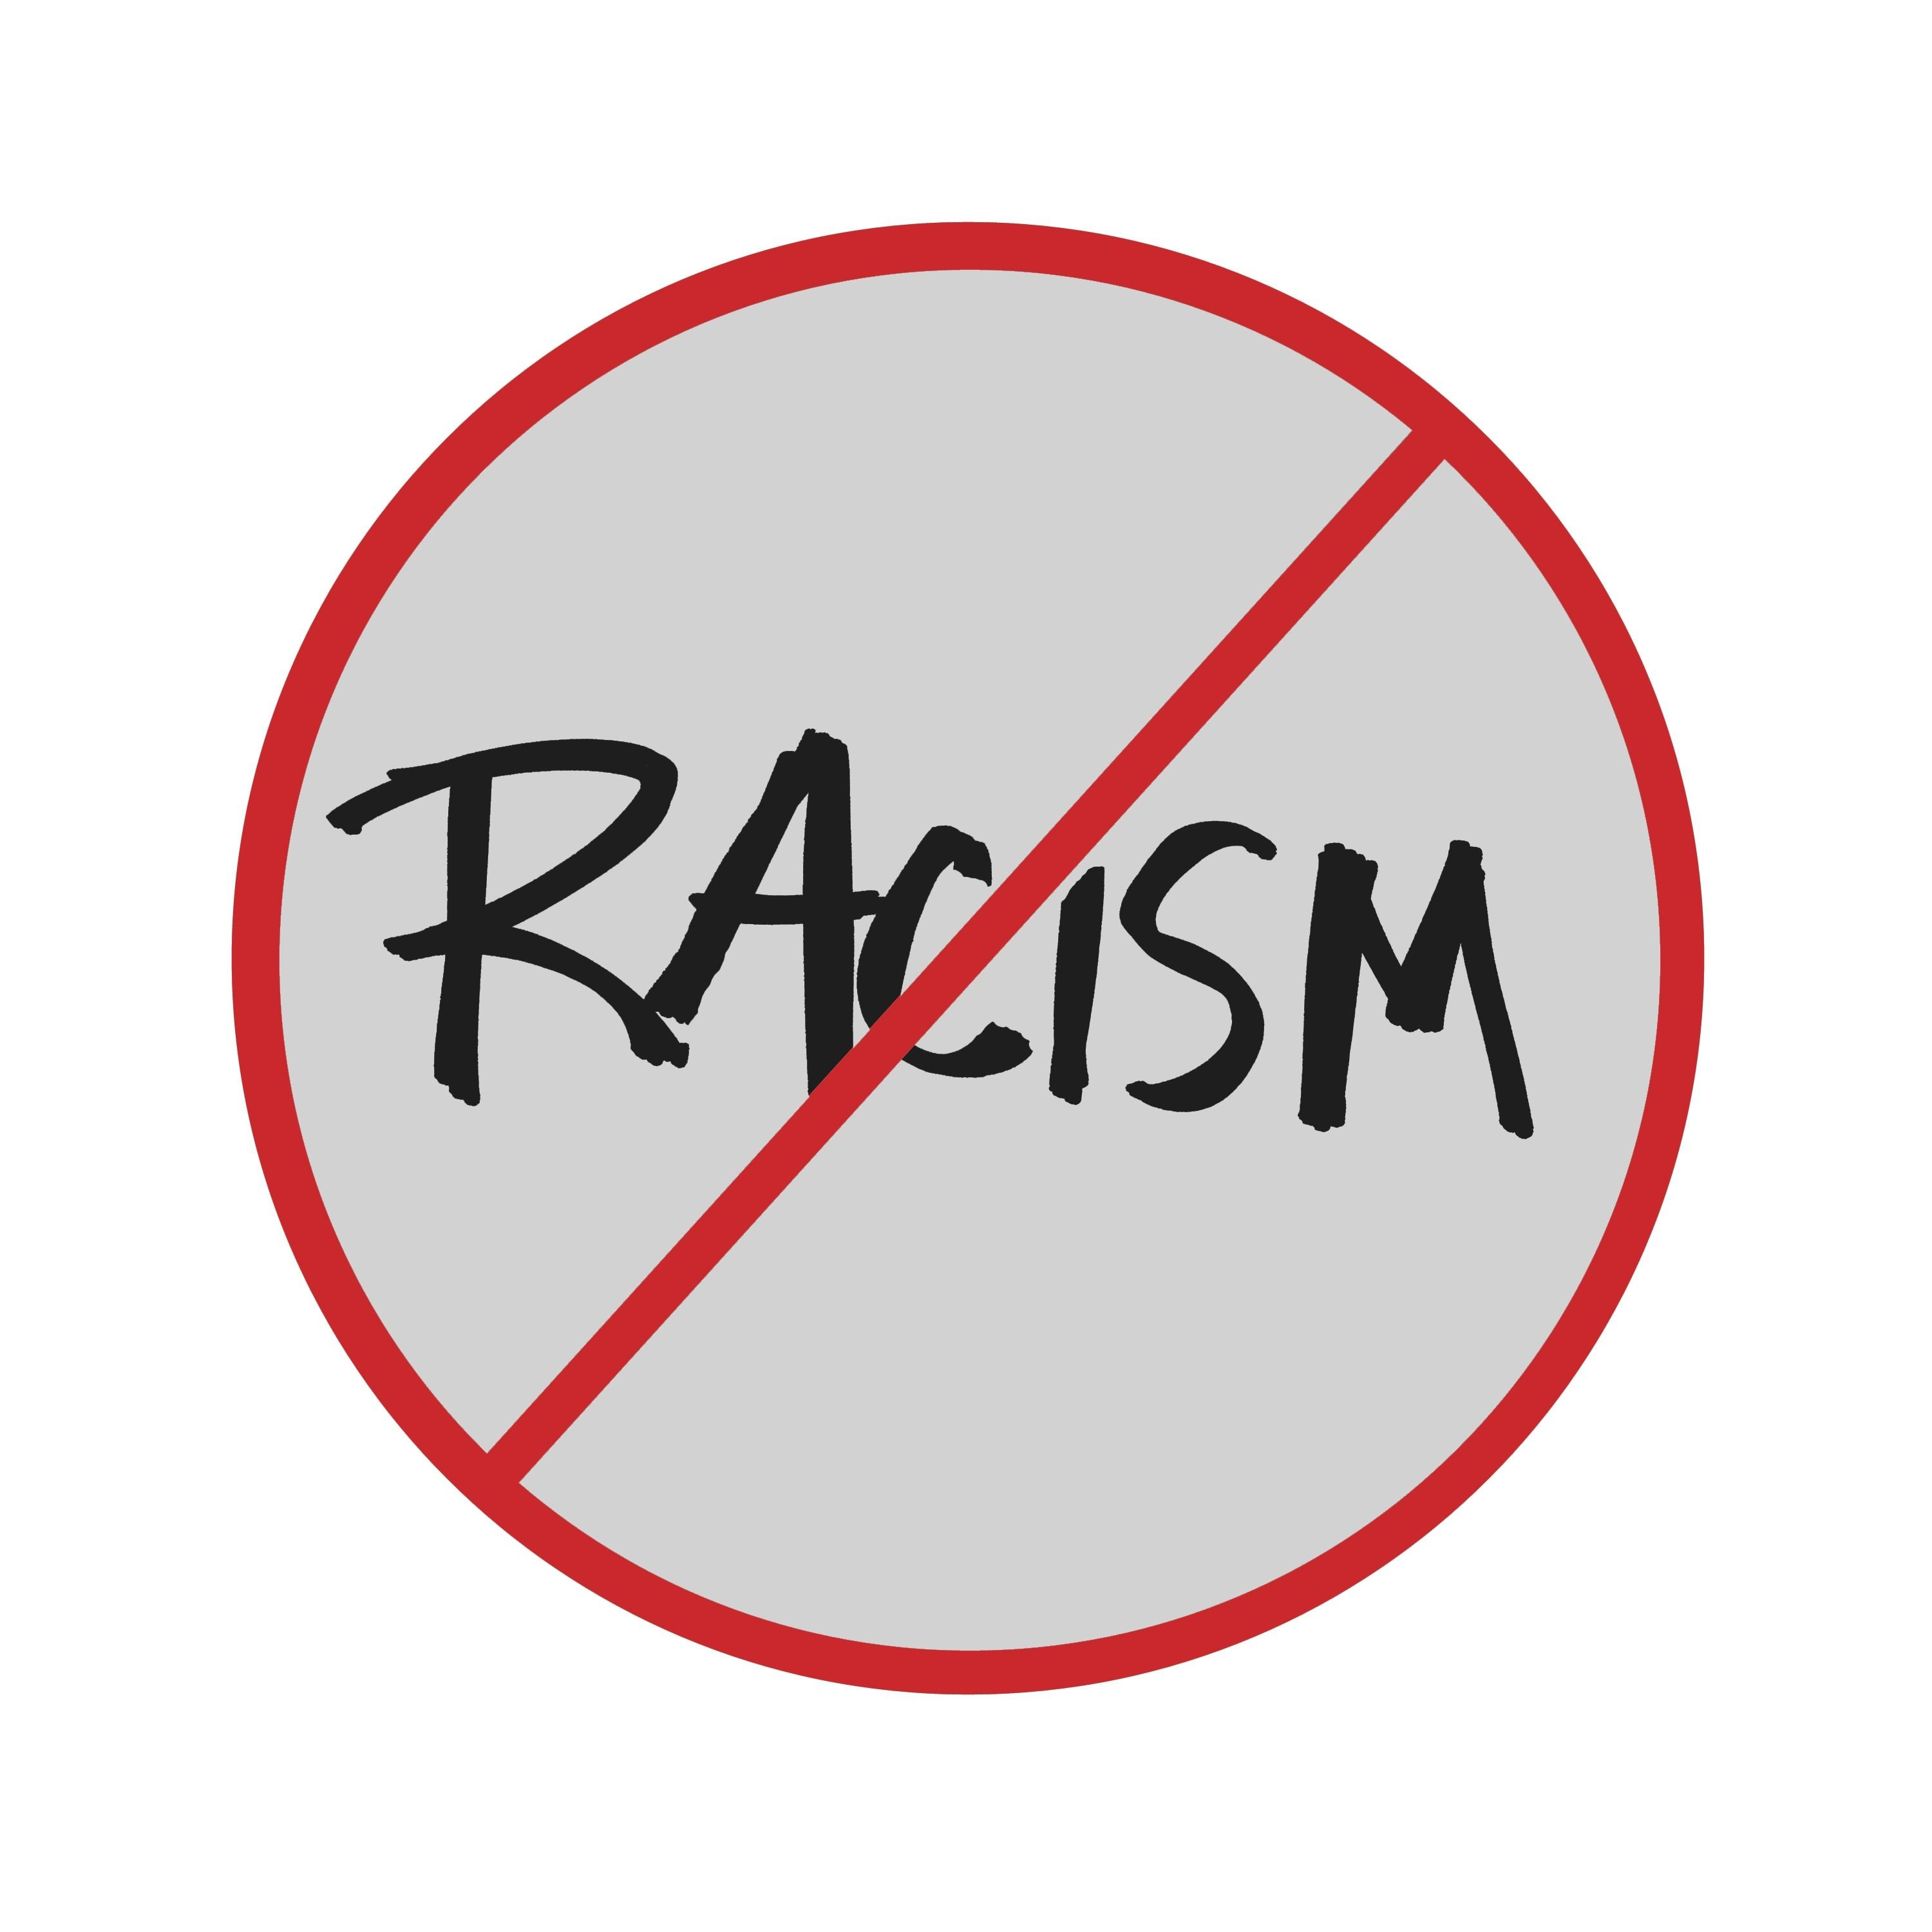 The Future of Work is Racism